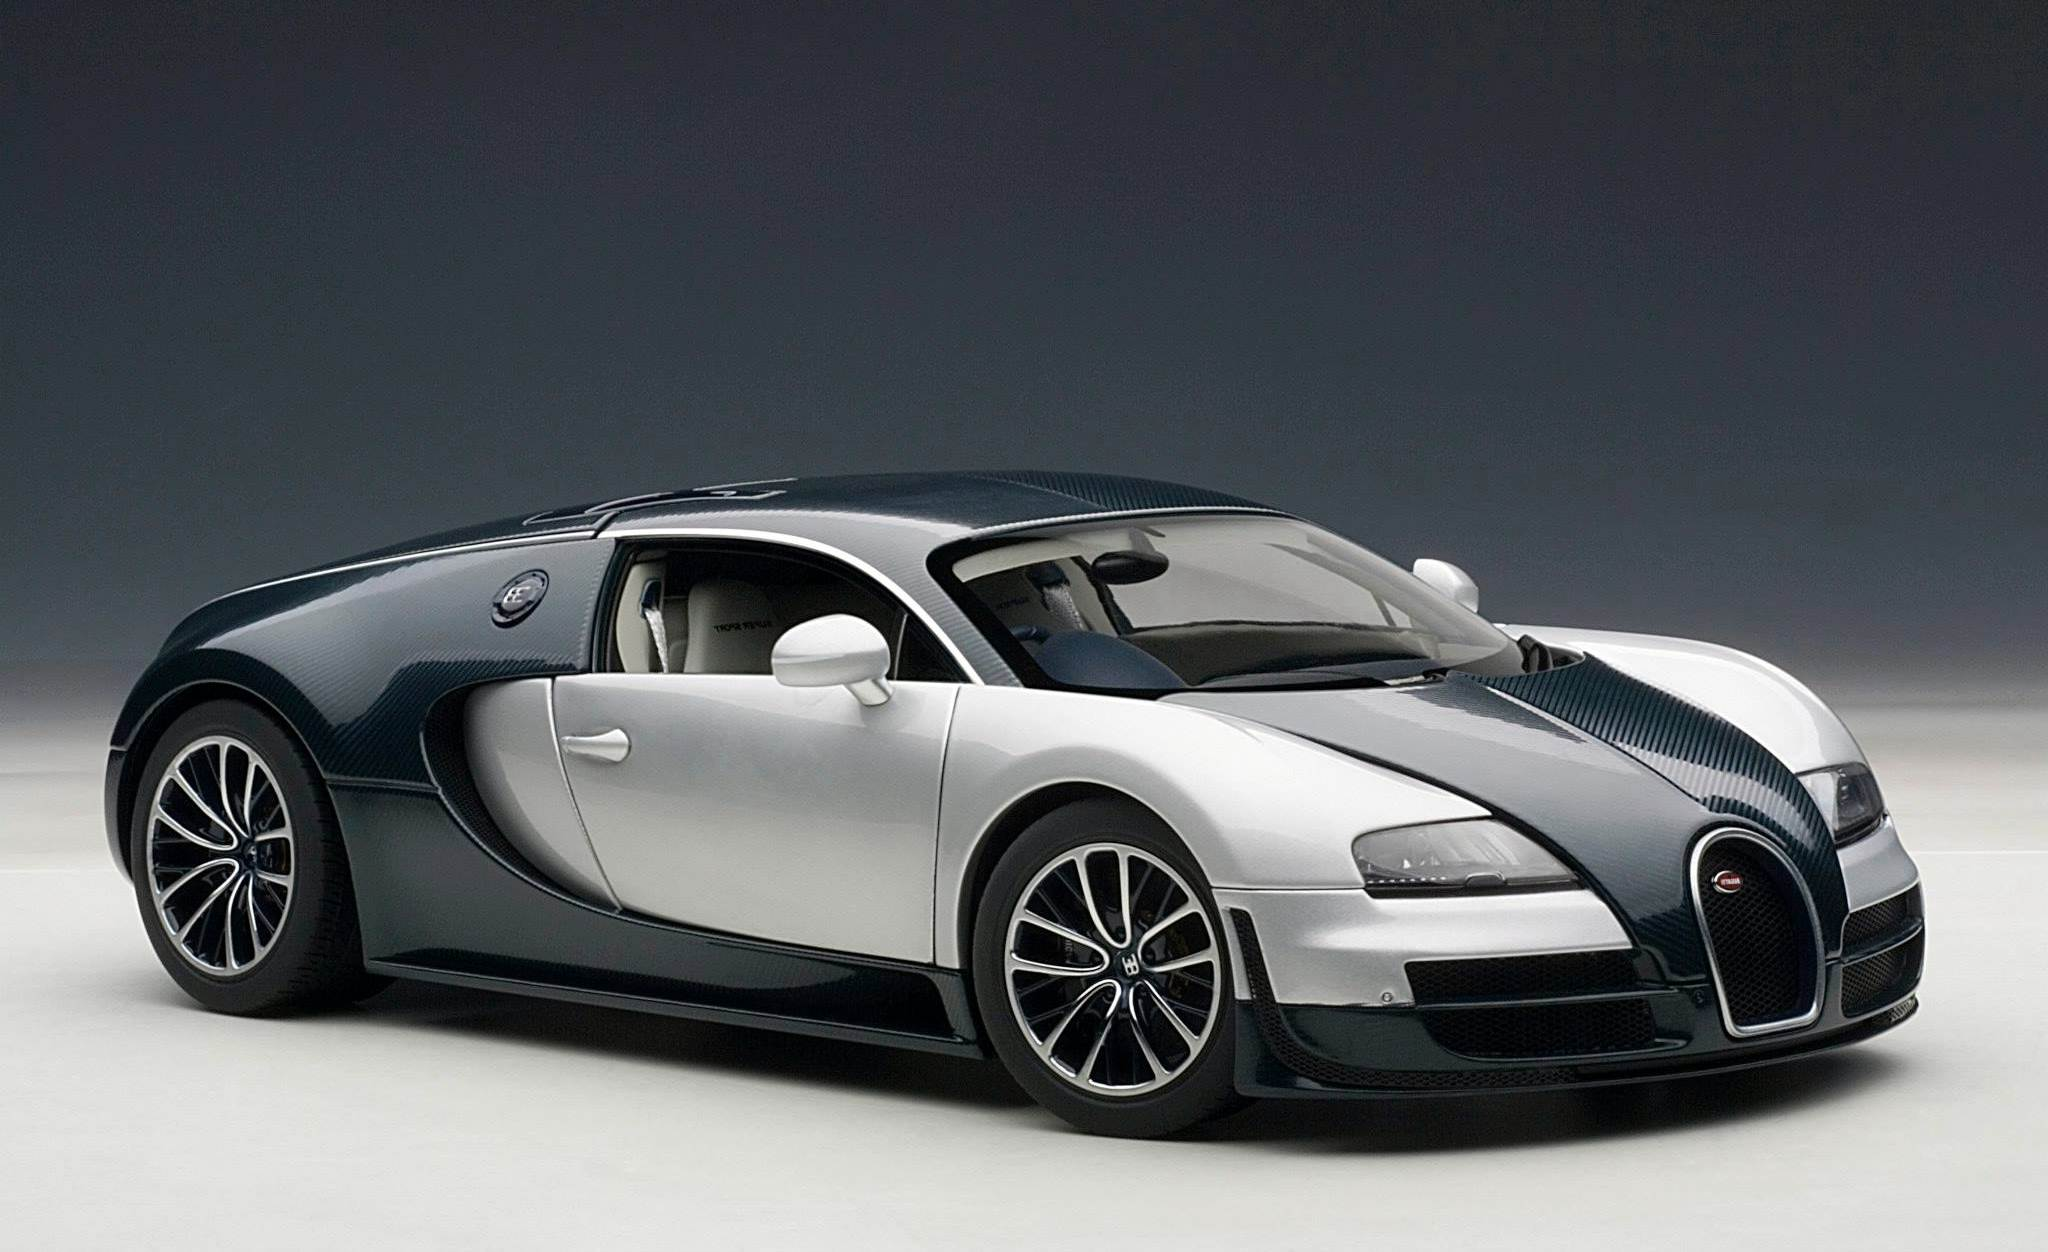 black bugatti veyron wallpaper wallpapersafari. Black Bedroom Furniture Sets. Home Design Ideas